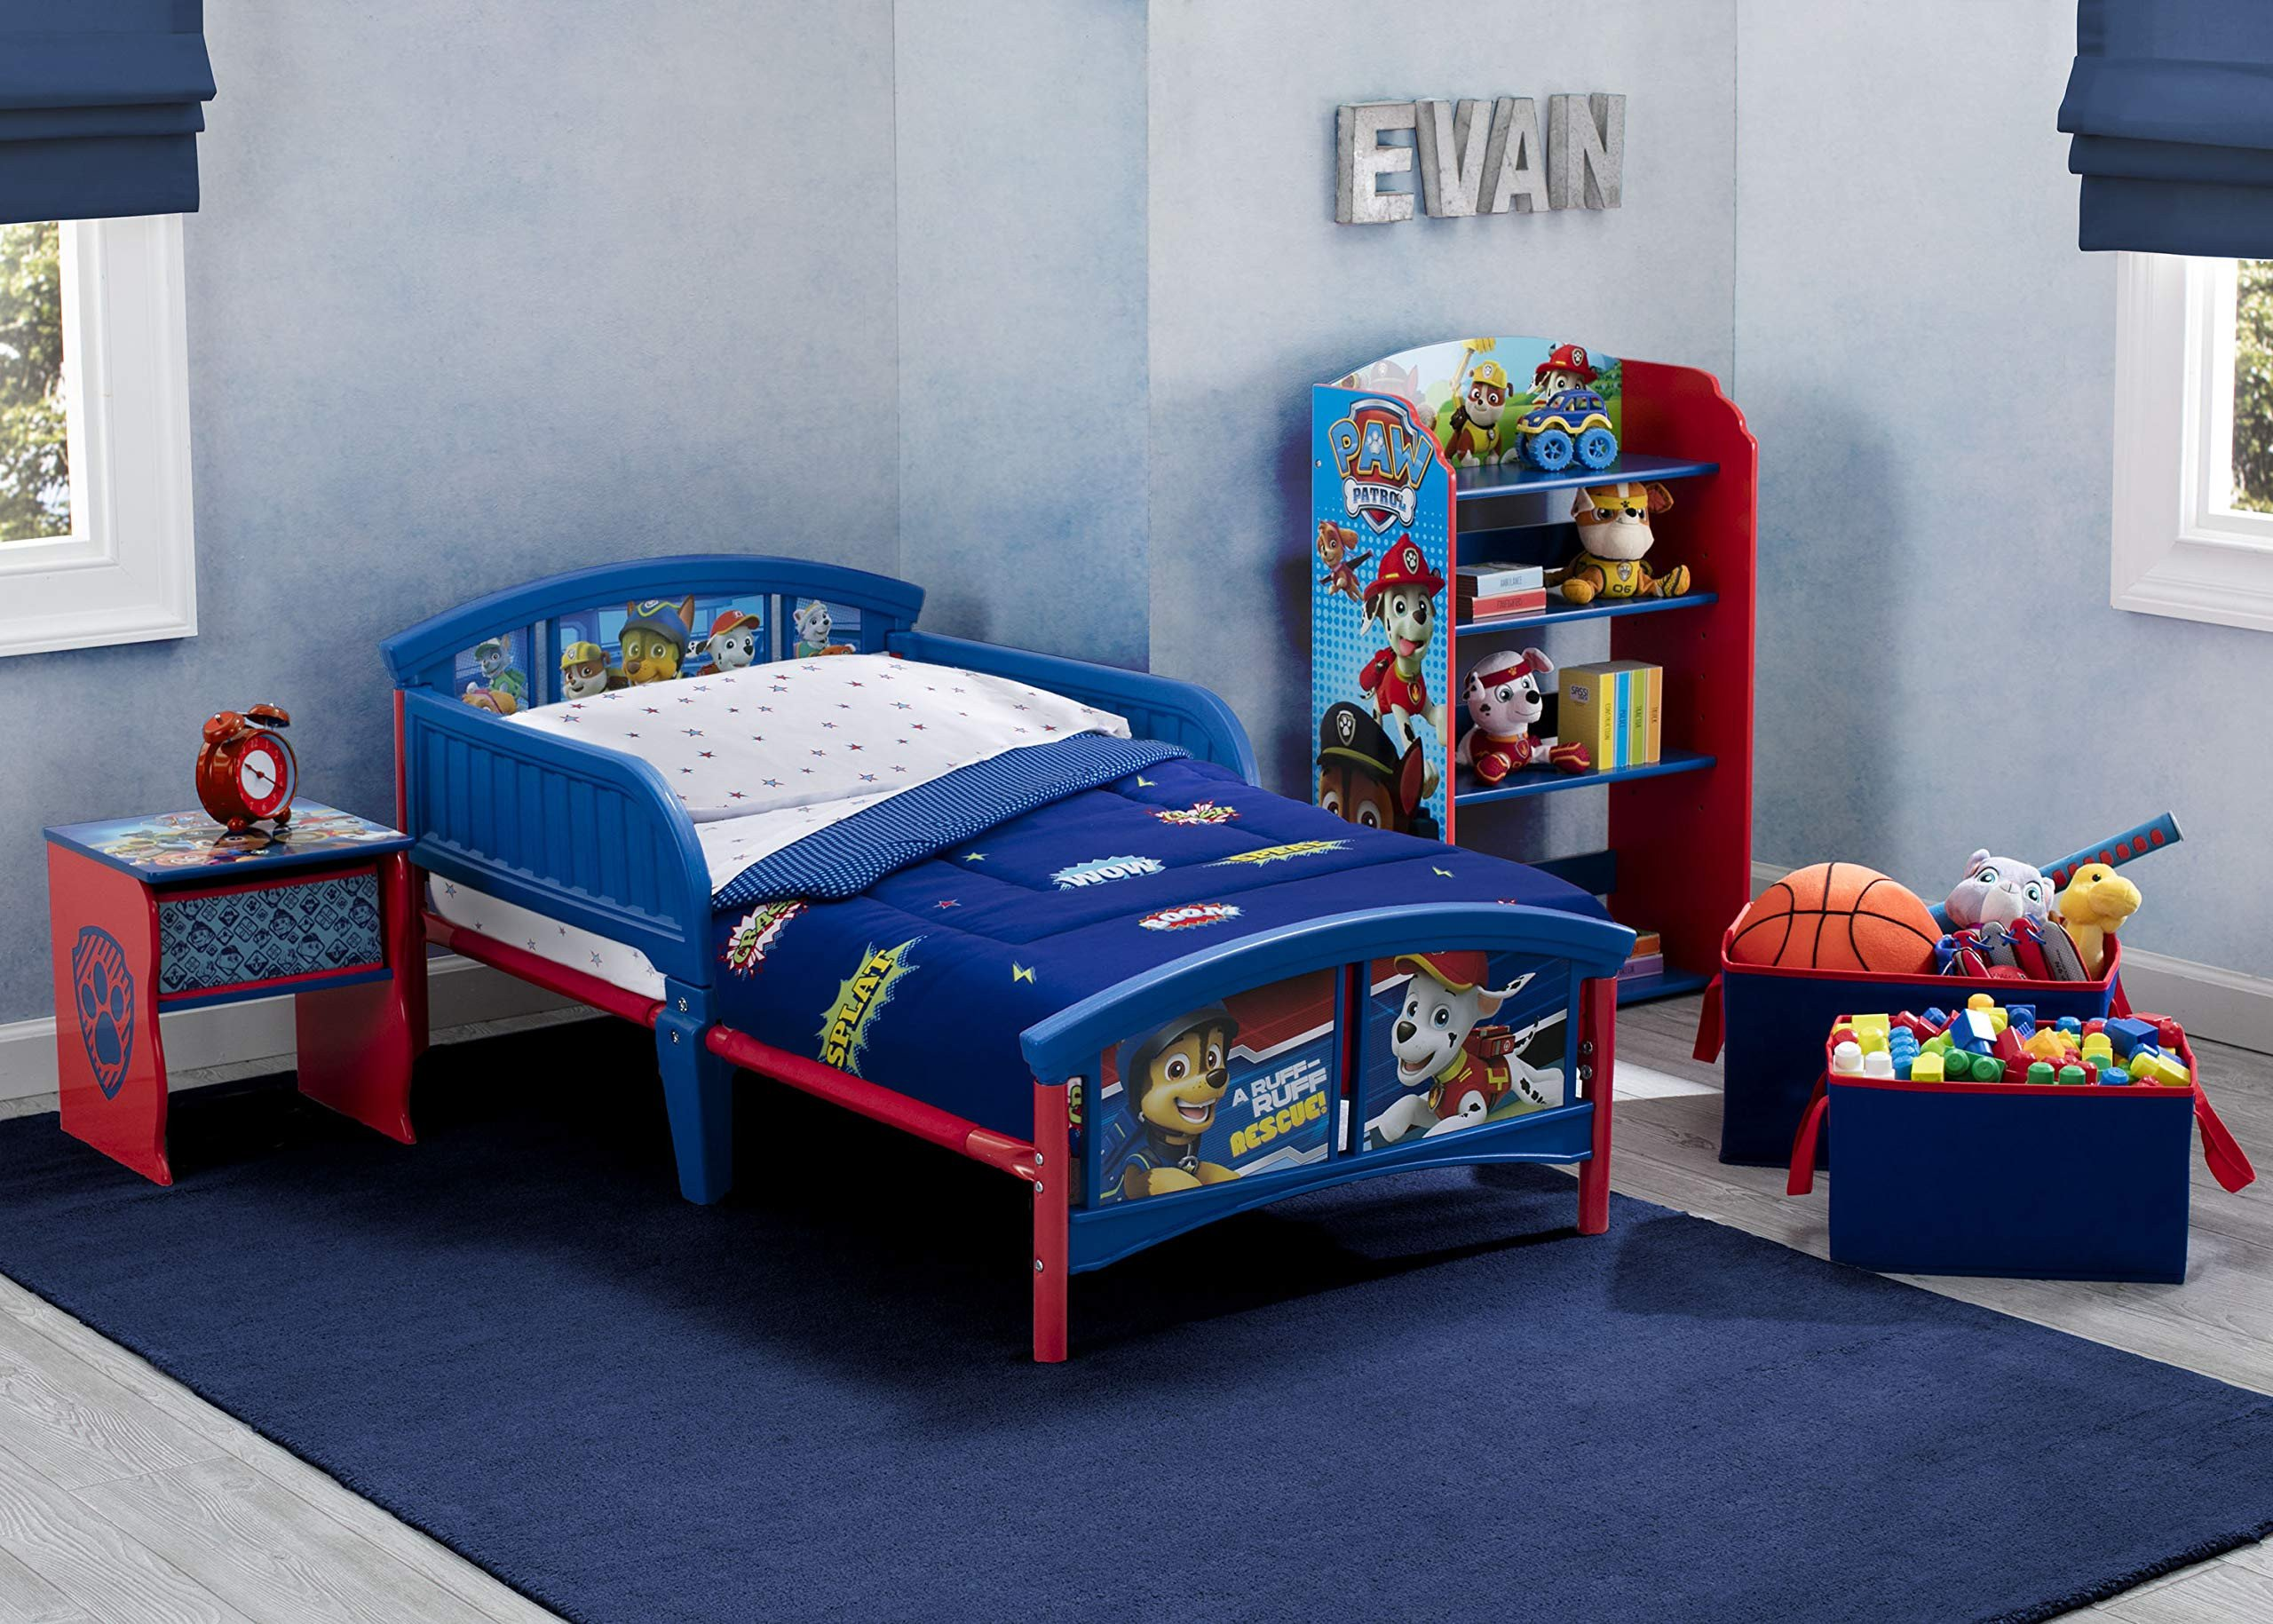 Paw Patrol Bedroom Furniture Fresh Amazon Delta Children Paw Patrol